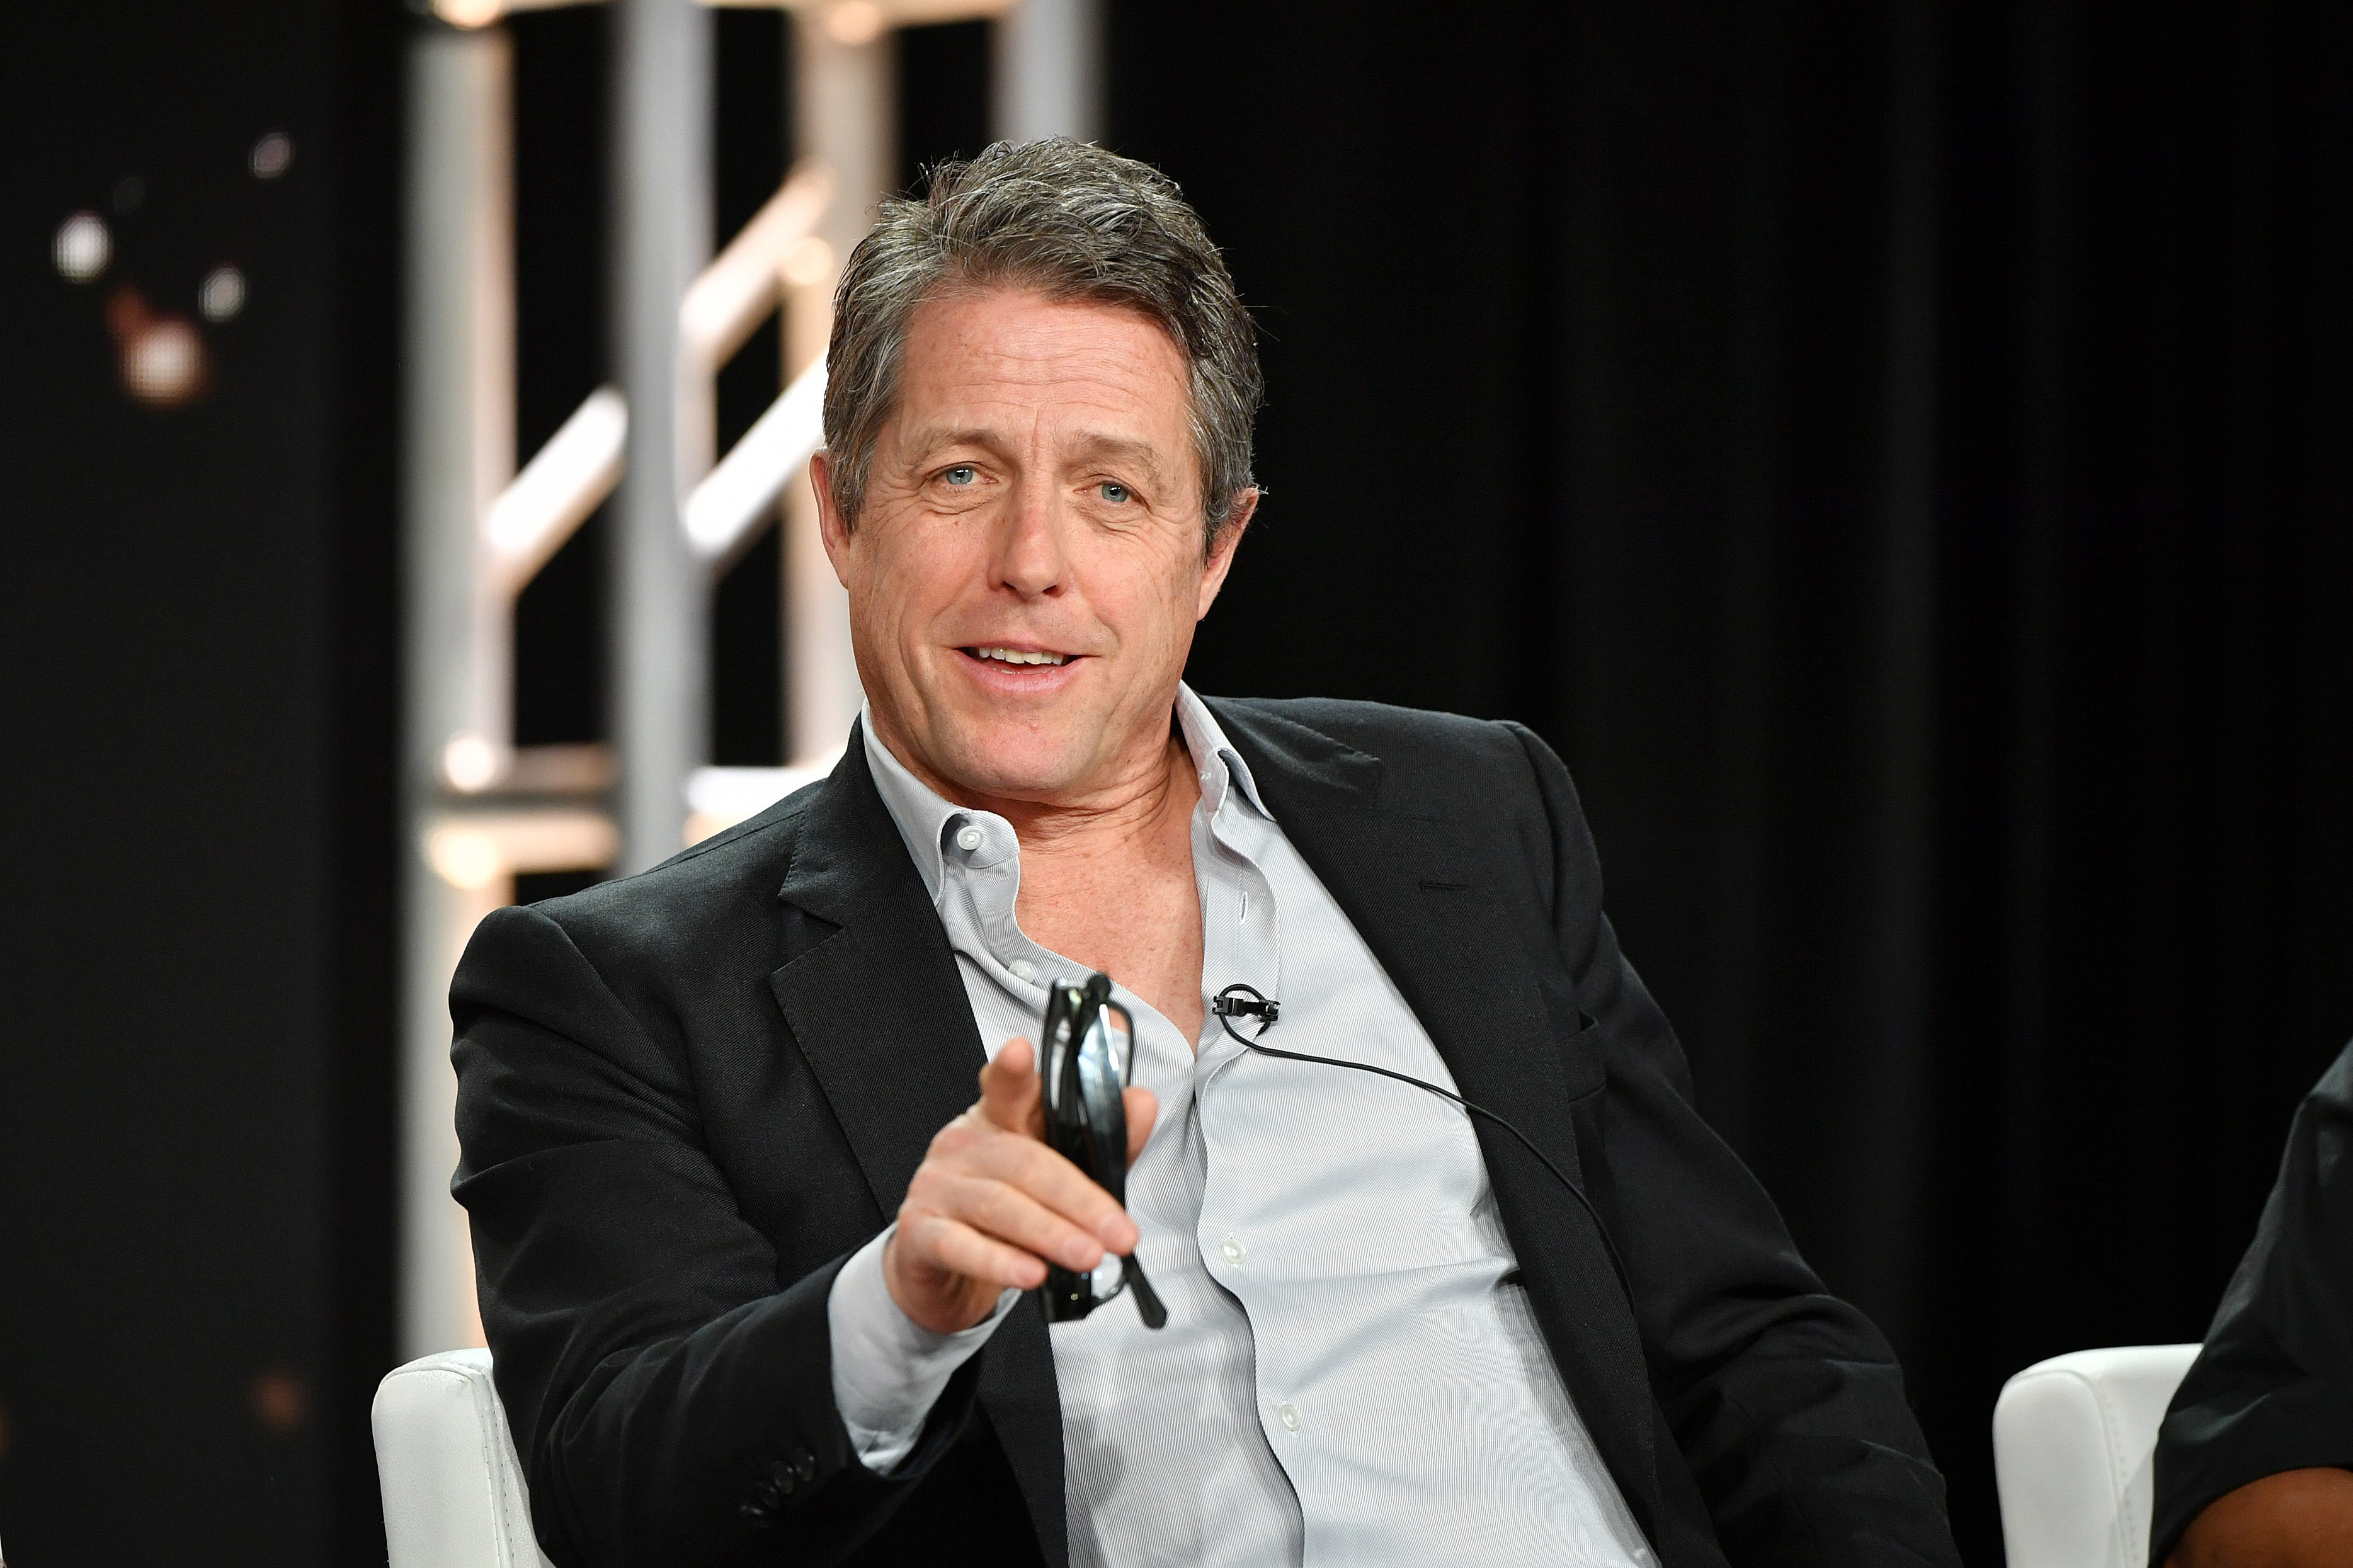 Hugh Grant defends Prince Harry, says tabloids  effectively murdered  Princess Diana